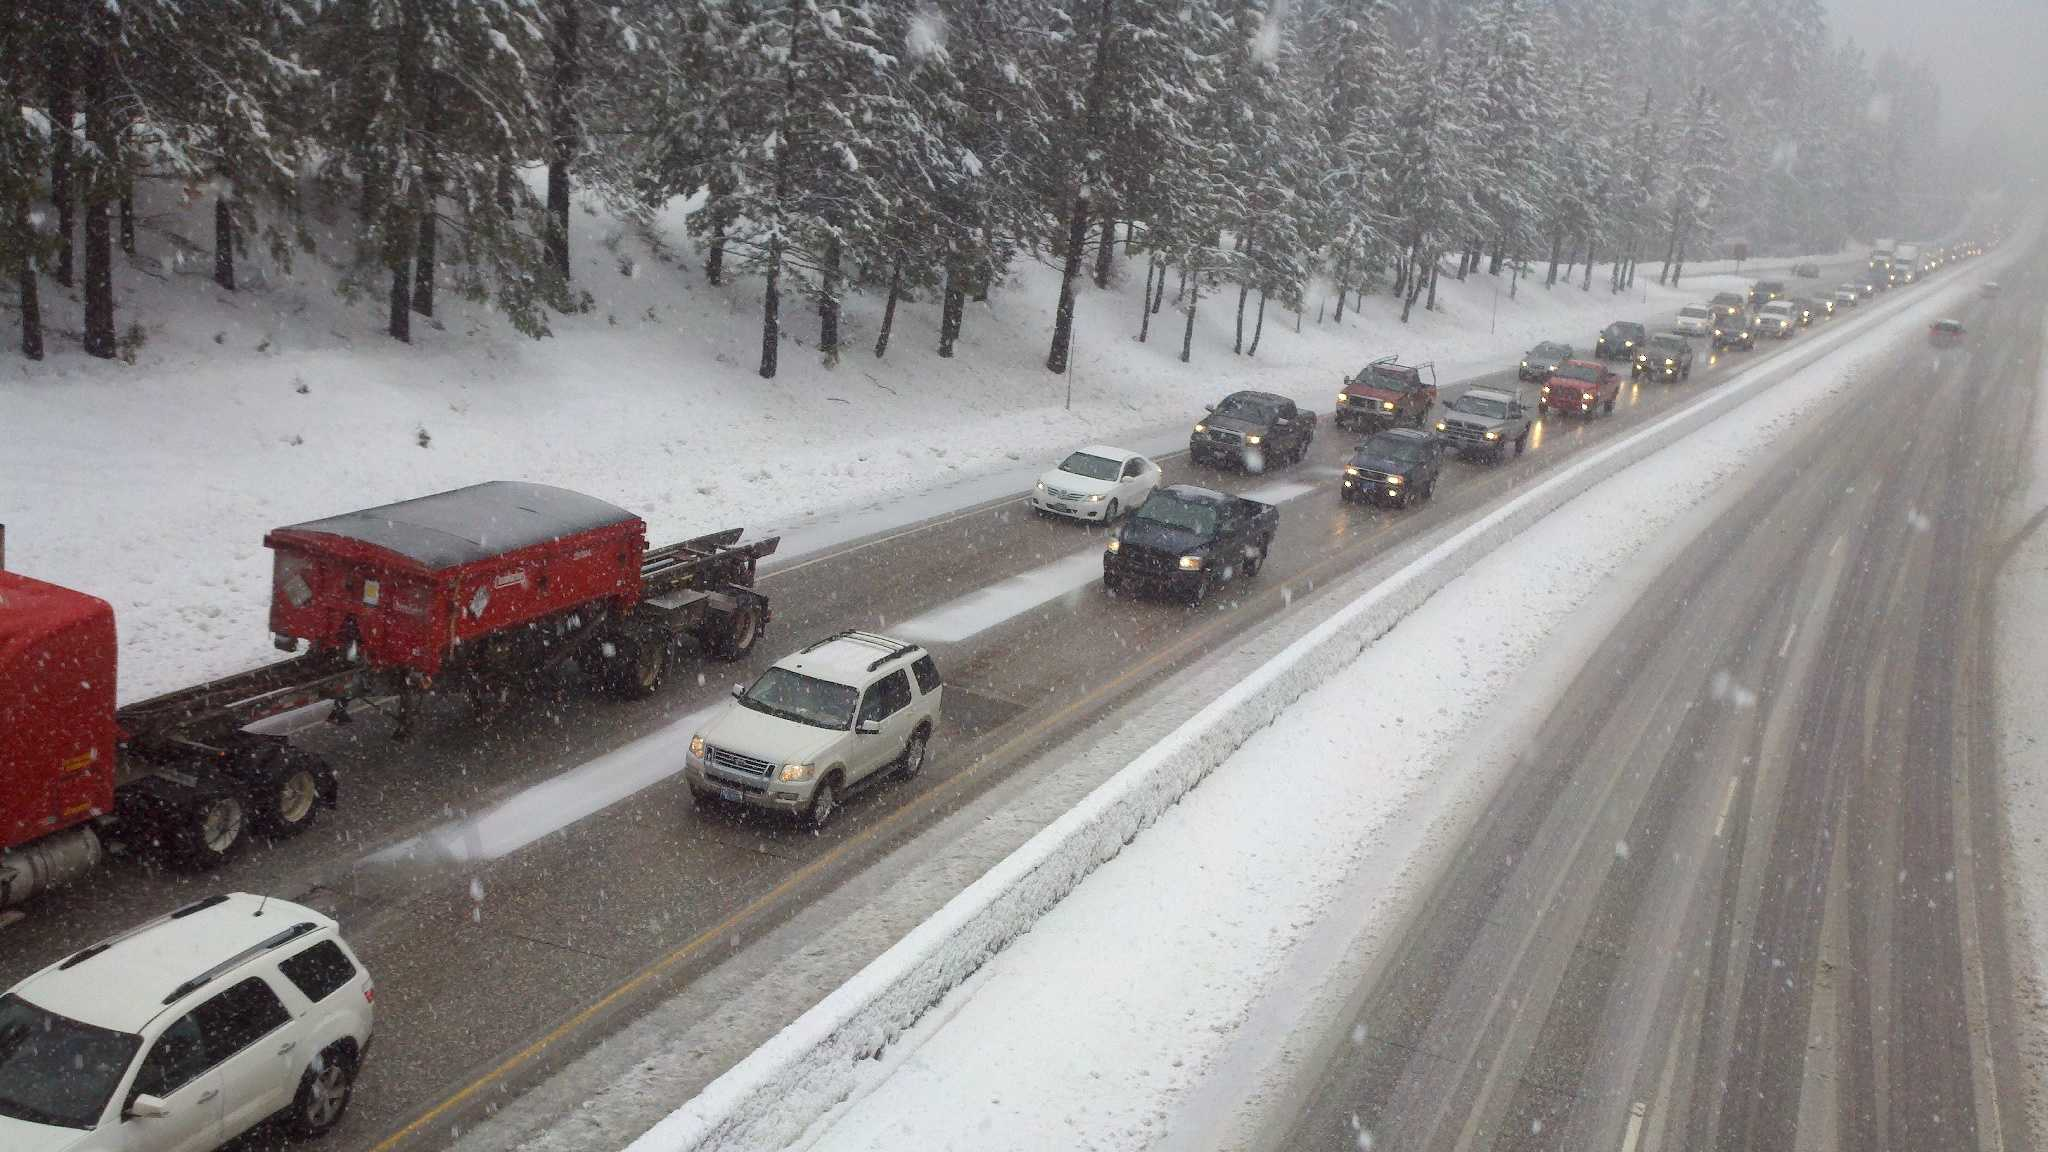 Traffic slows down on Interstate 80 in Baxter.